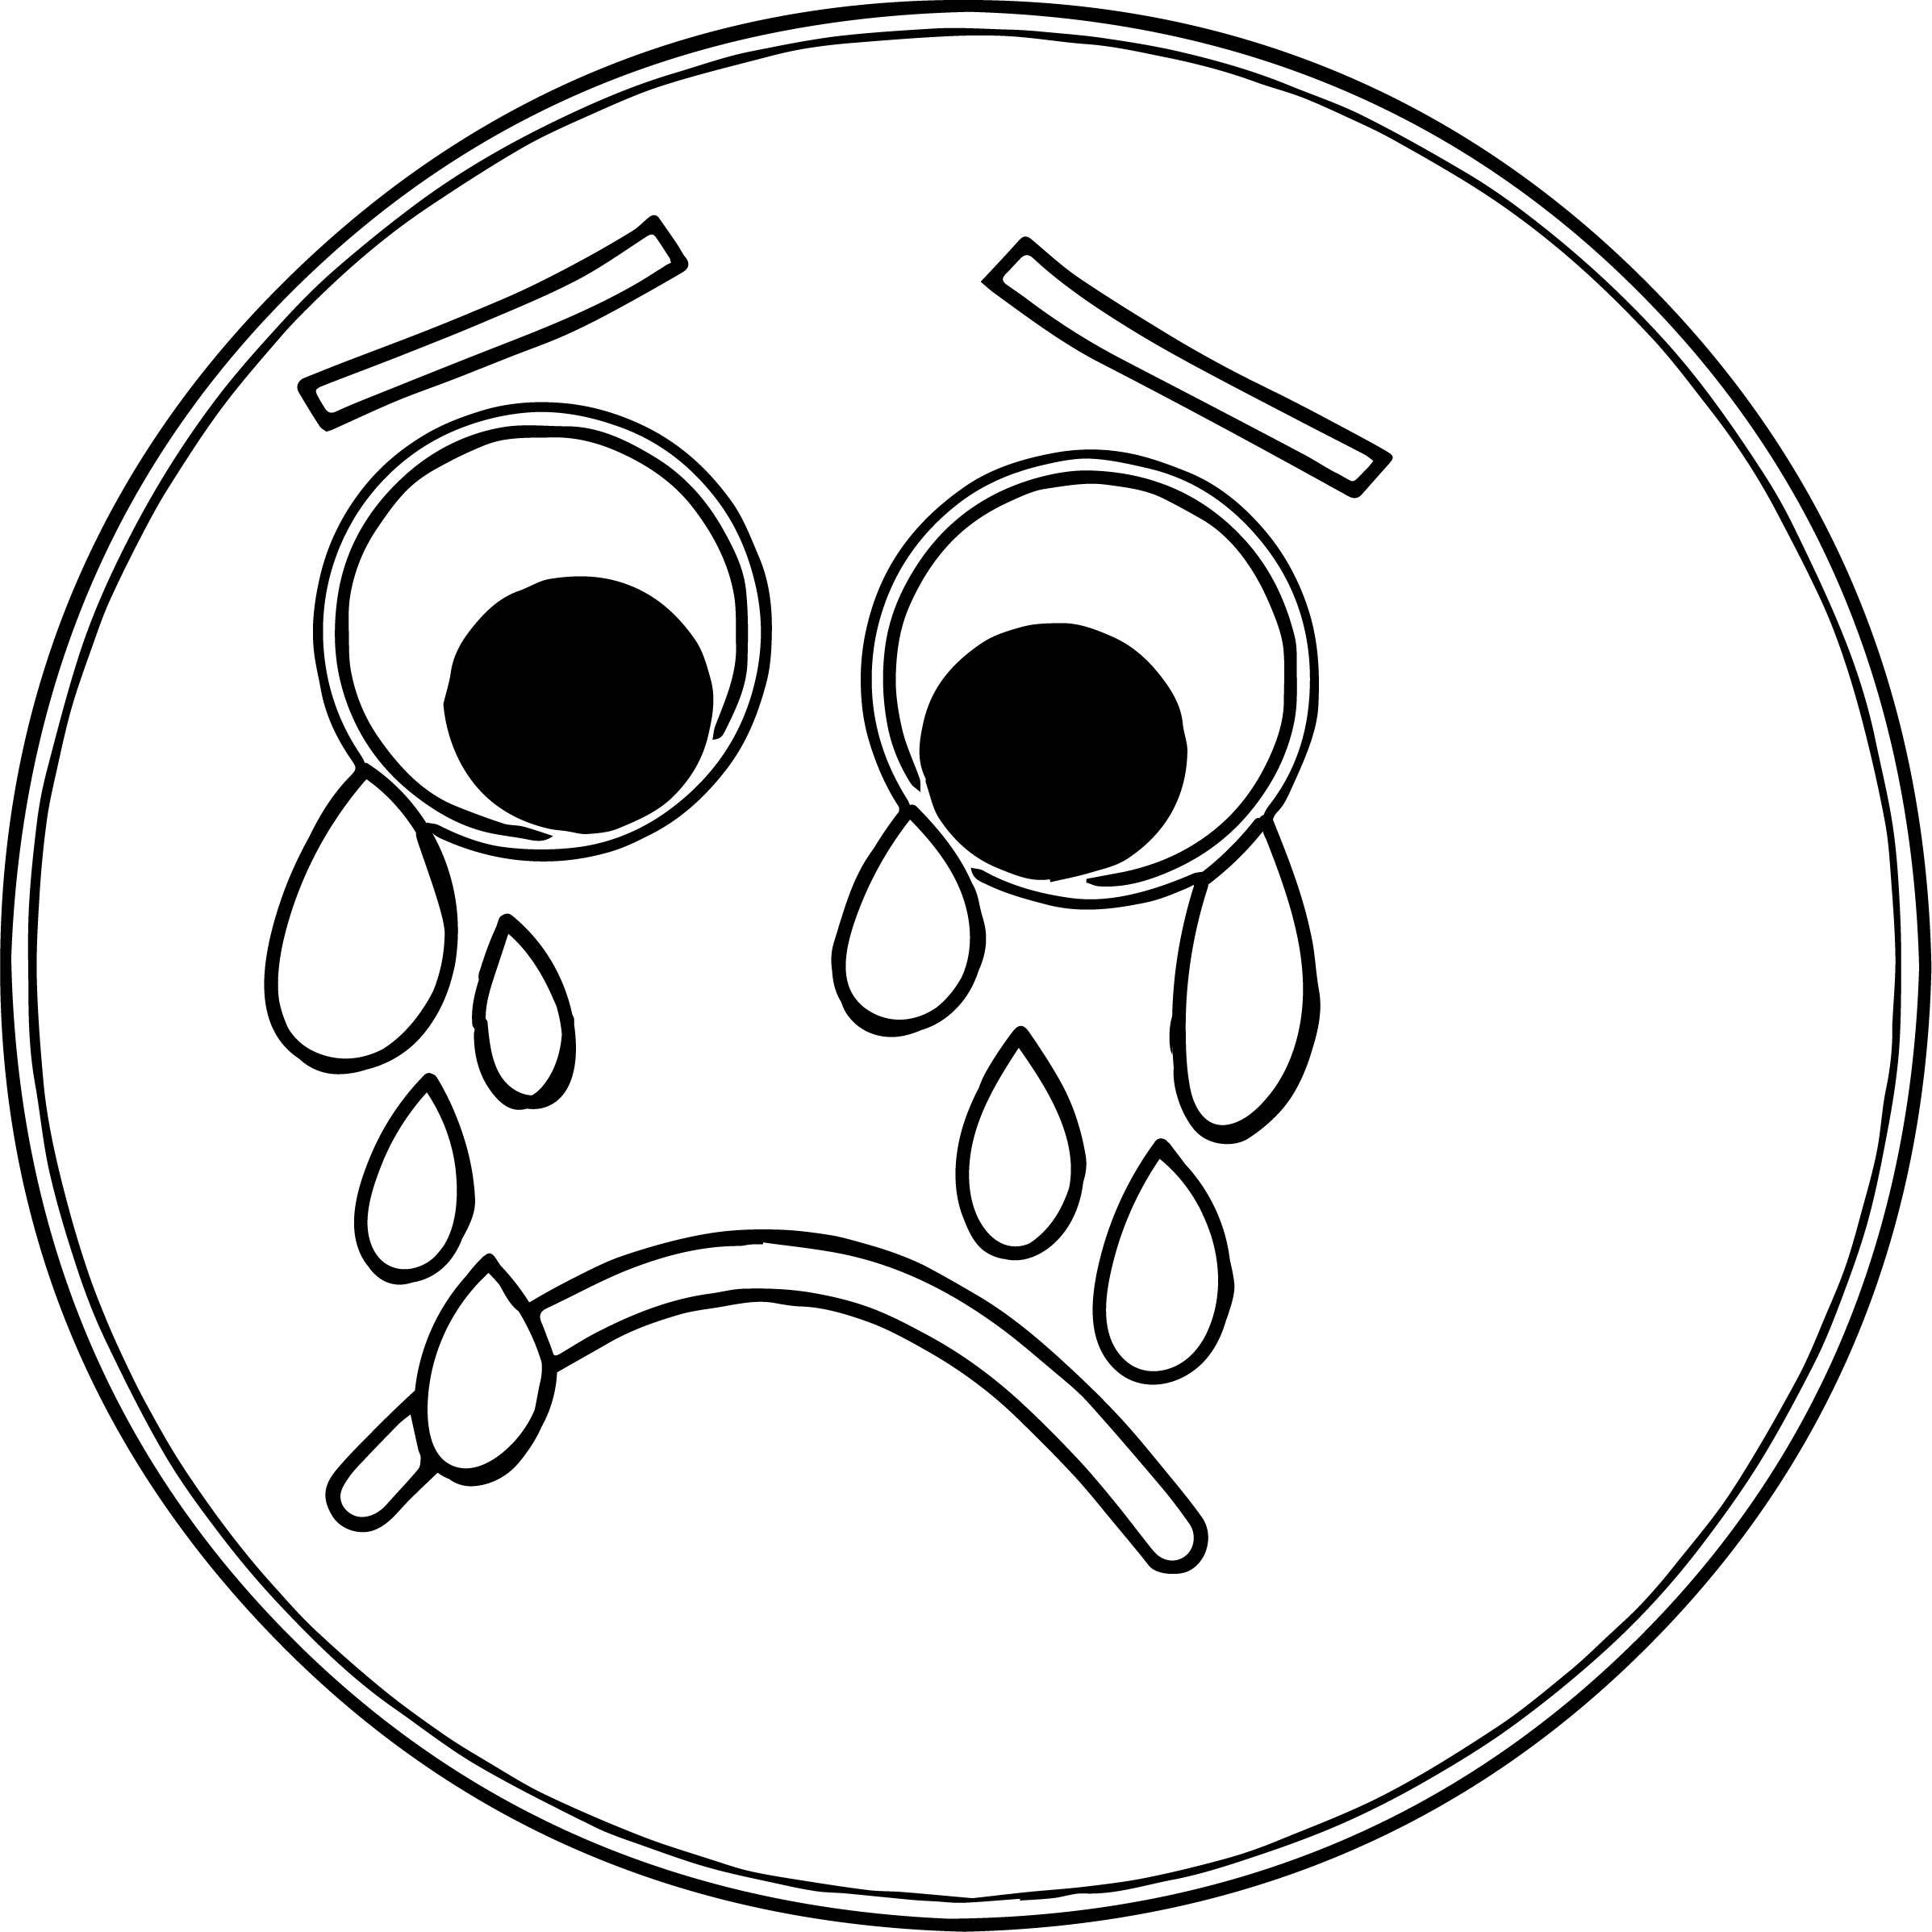 2395x2395 Best Of Sad Face Coloring Page Free Coloring Pages Download